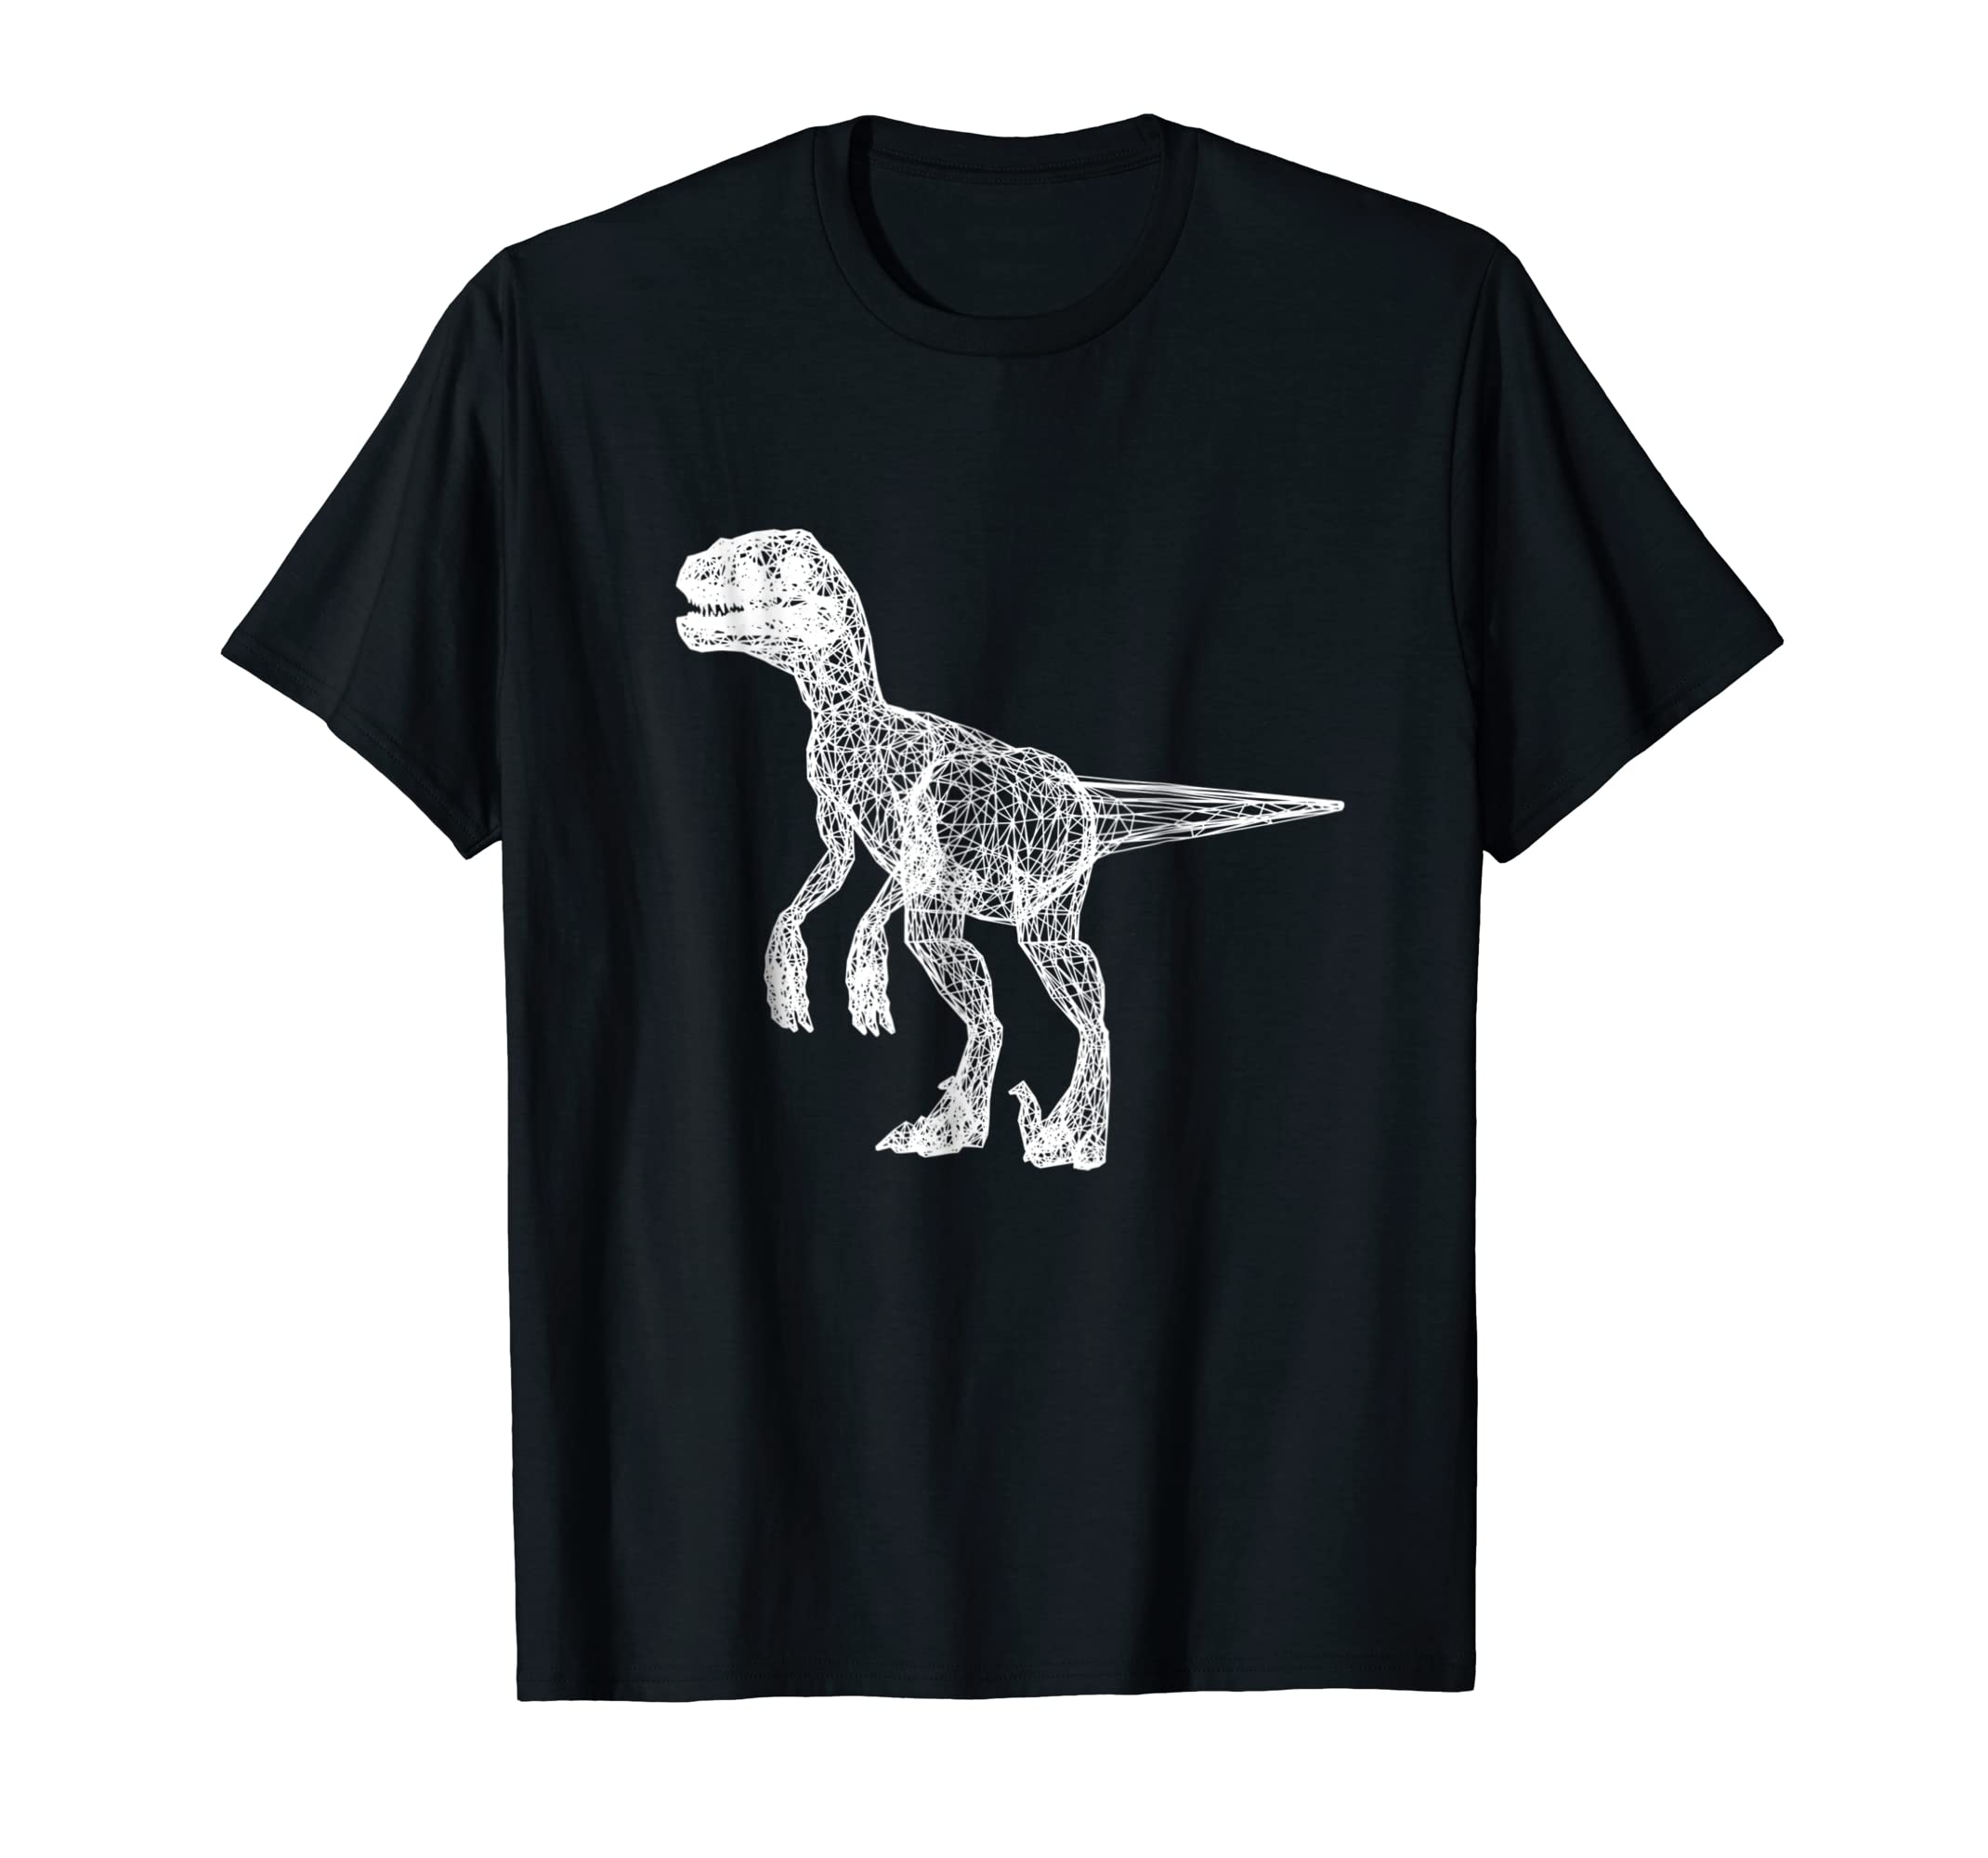 996efcff4 Amazon.com  T-rex Skeleton Shirt Awesome Dinosaur White Graphic Tee ...